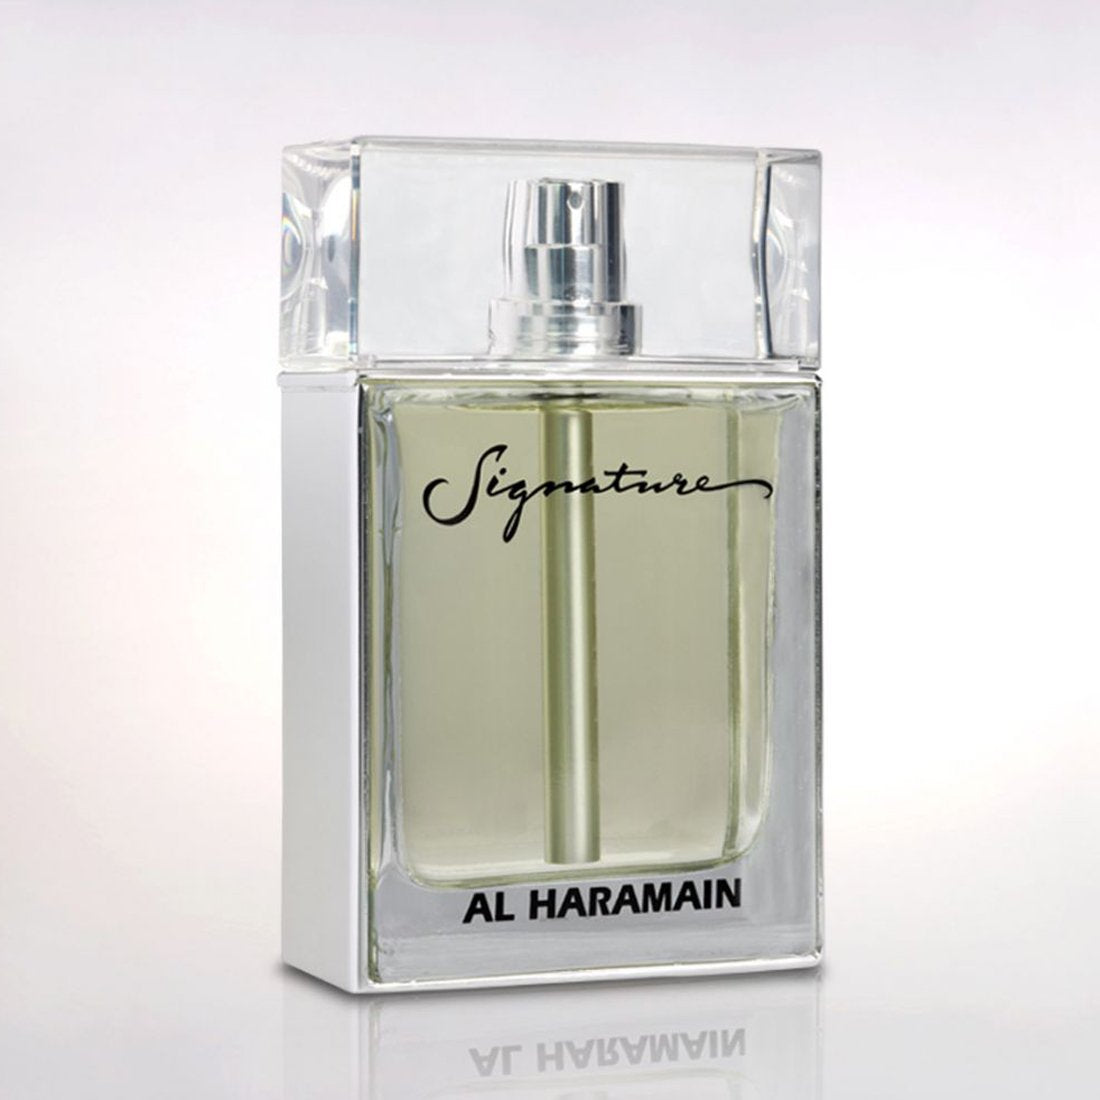 Al Haramain Signature Silver Perfume Spray - 100ml